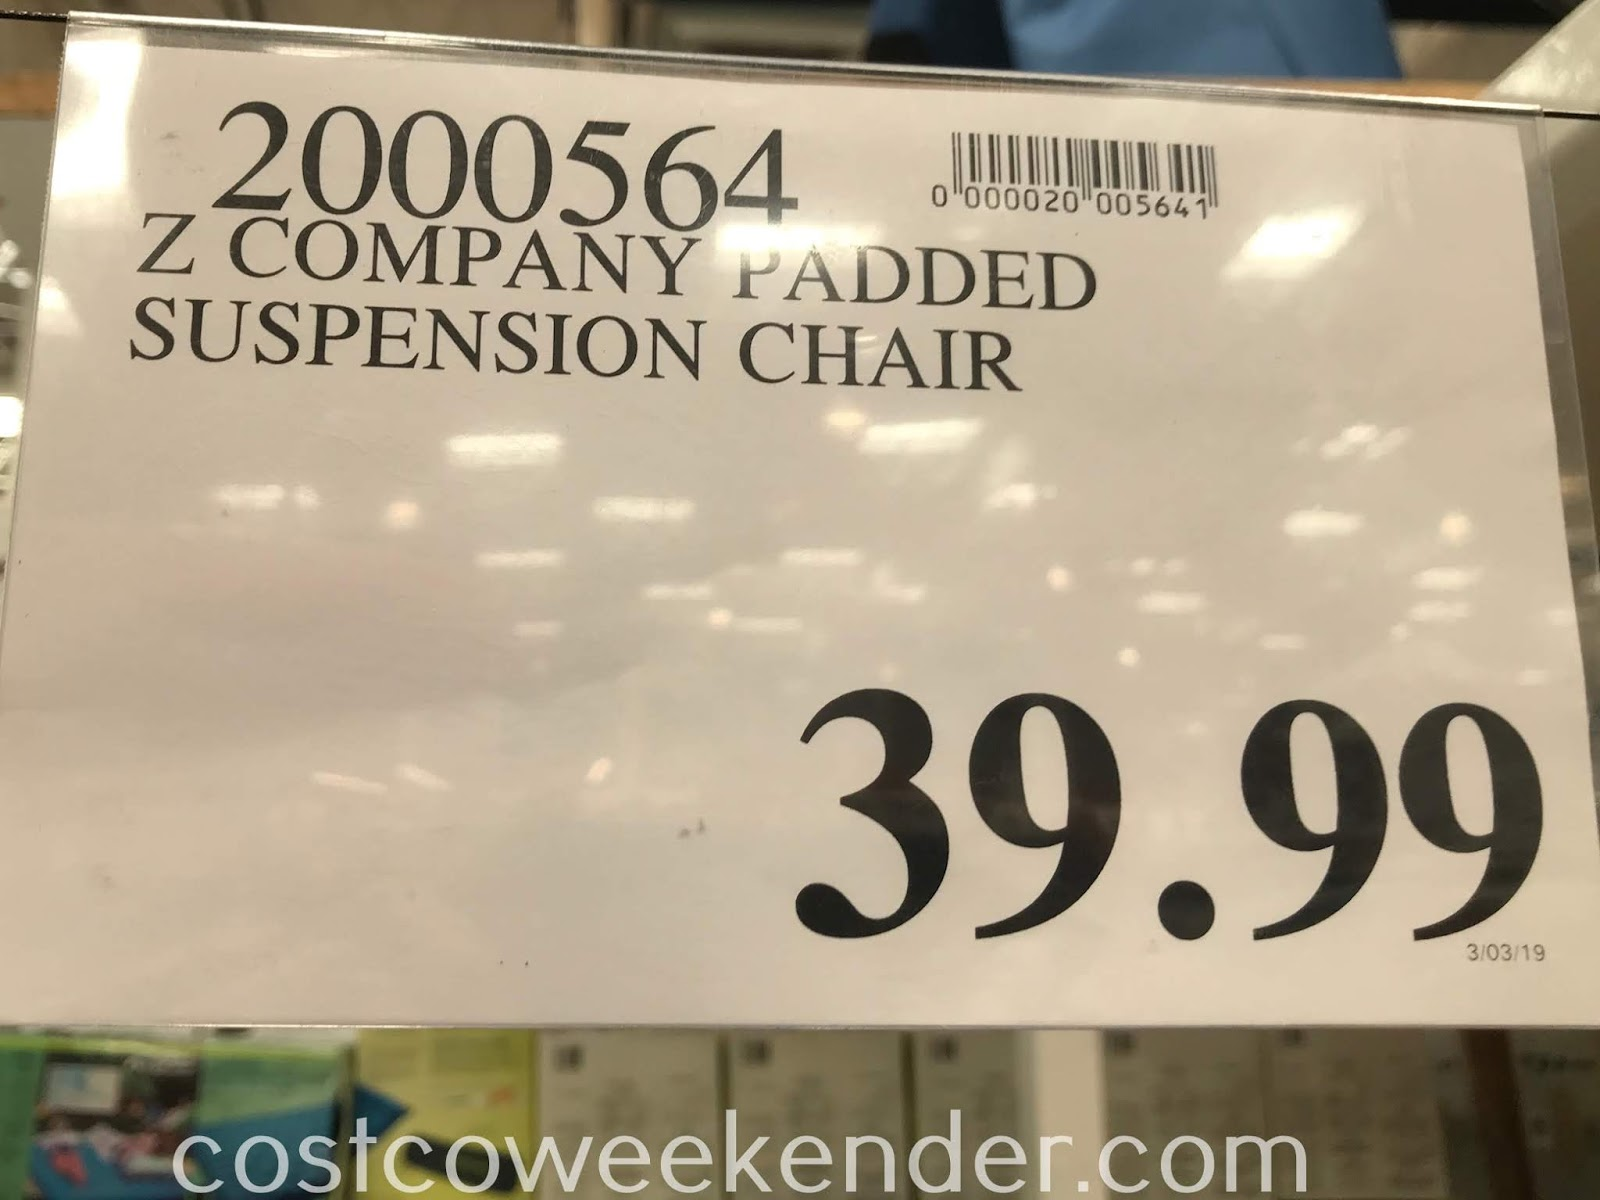 Deal for the Z Company Bungee Lounger at Costco